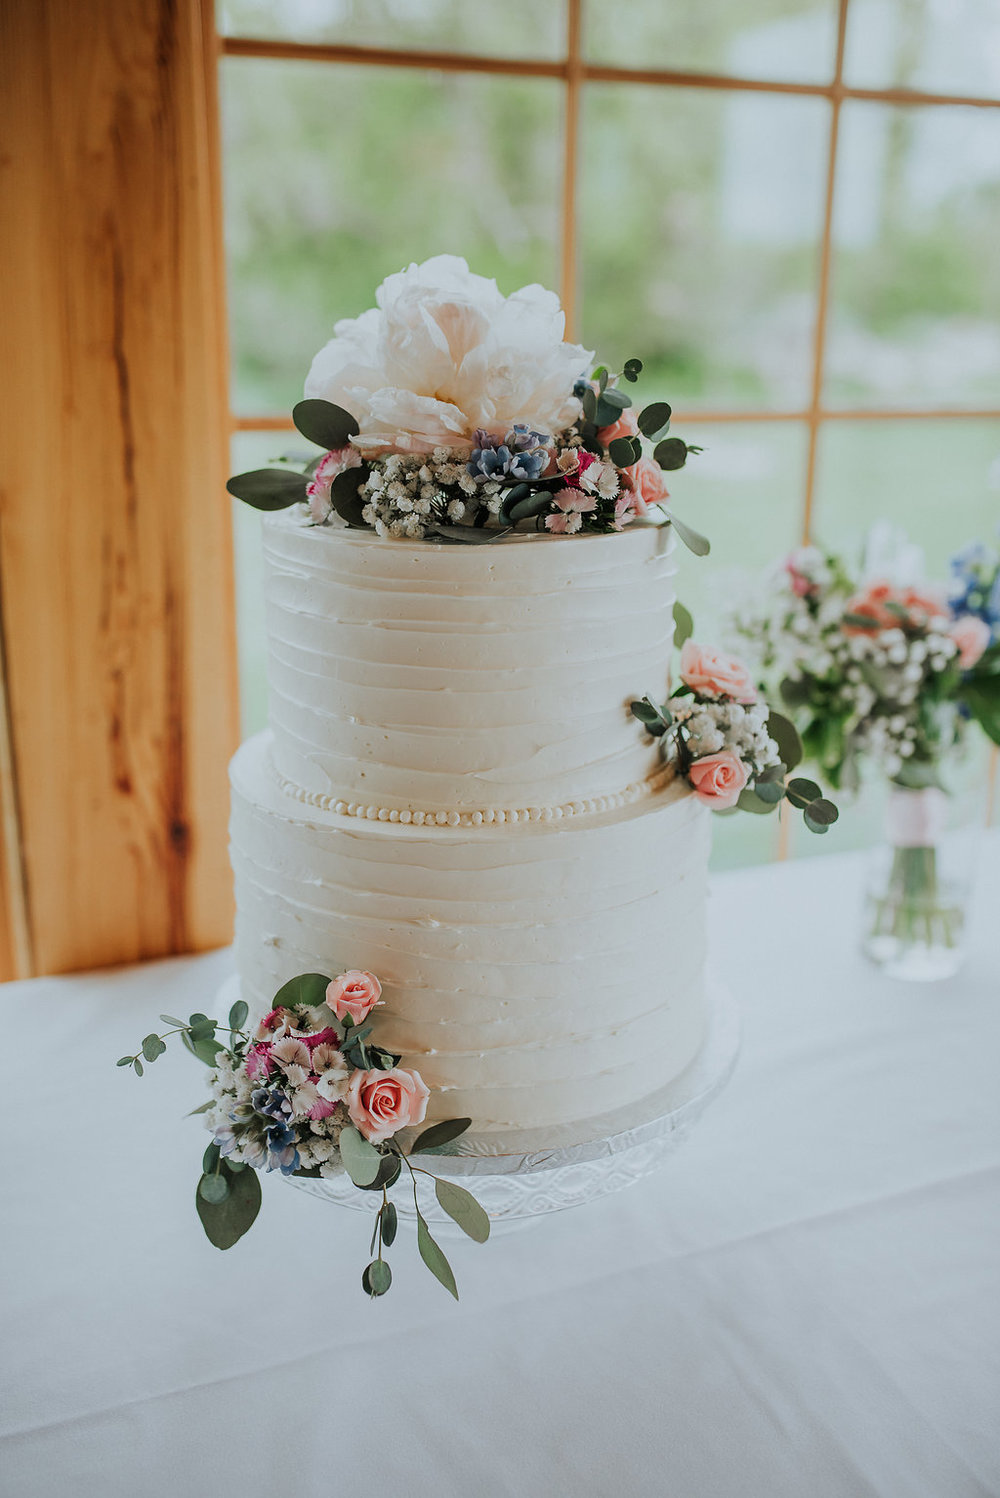 Buttercream Cake with Flowers - Wedding Florist Winnipeg